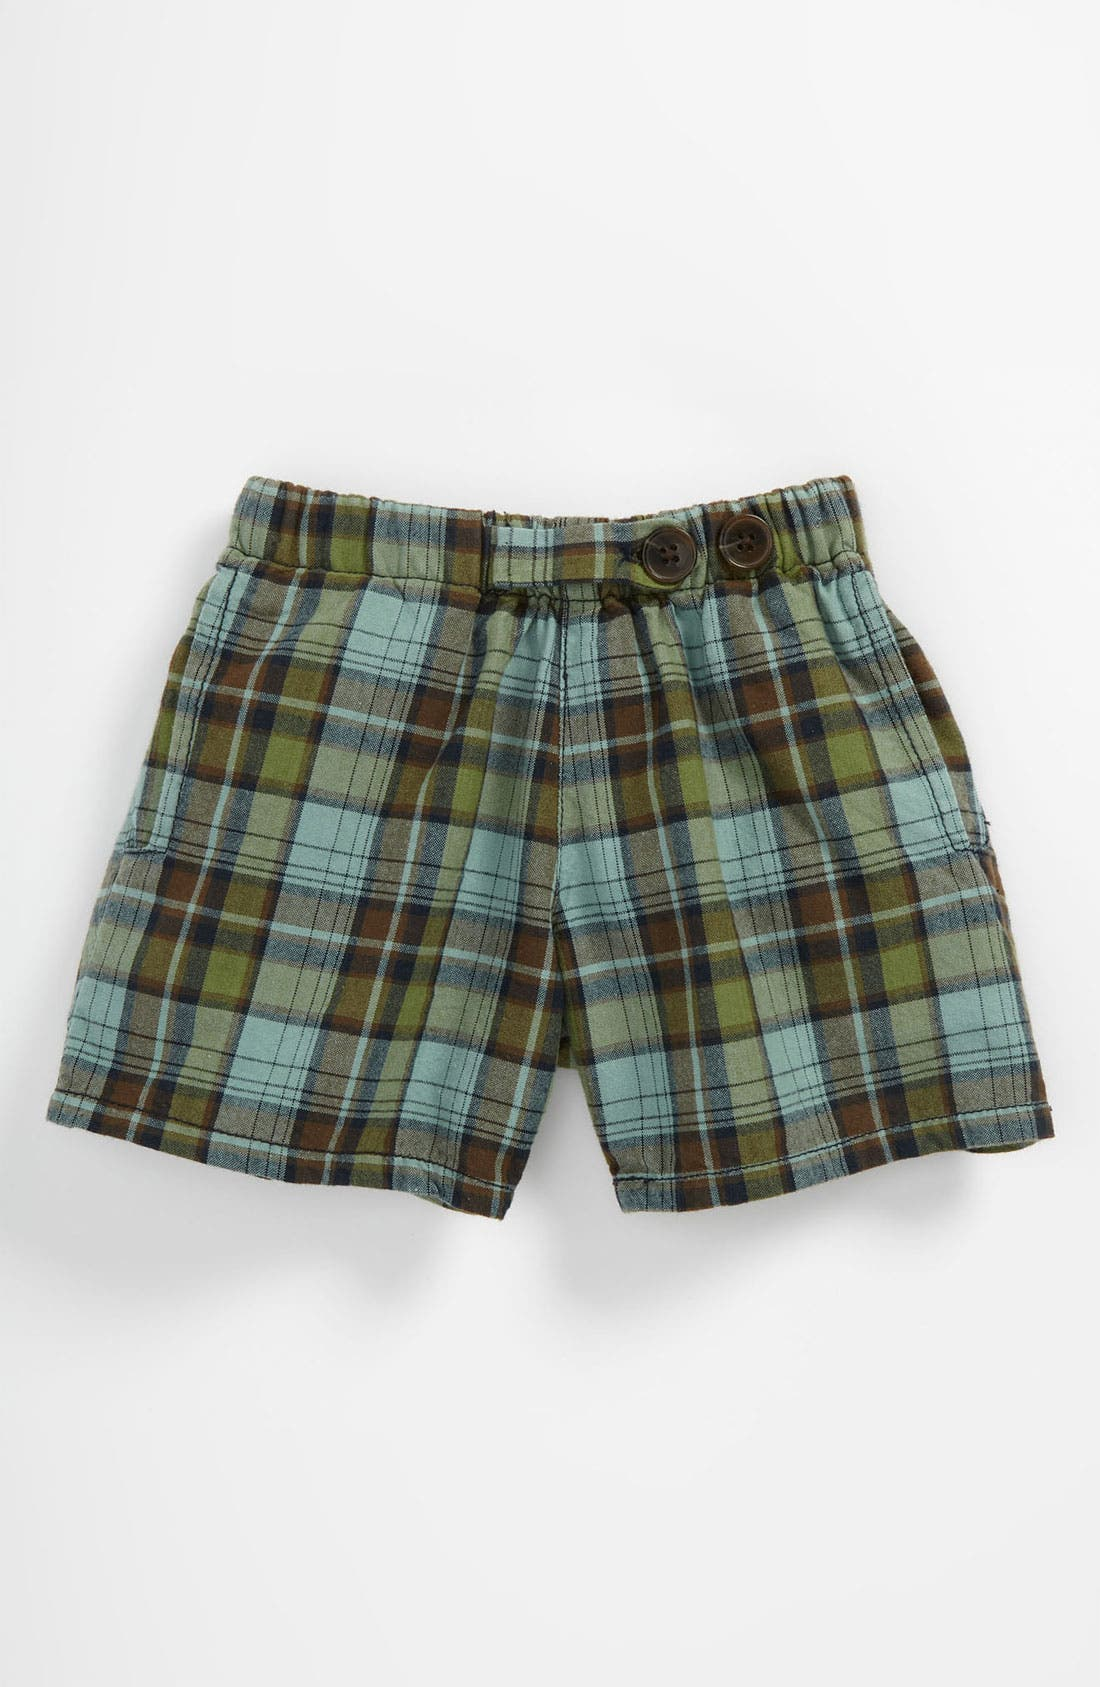 Alternate Image 1 Selected - Peek 'Bangalore - Havasu Plaid' Shorts (Baby)